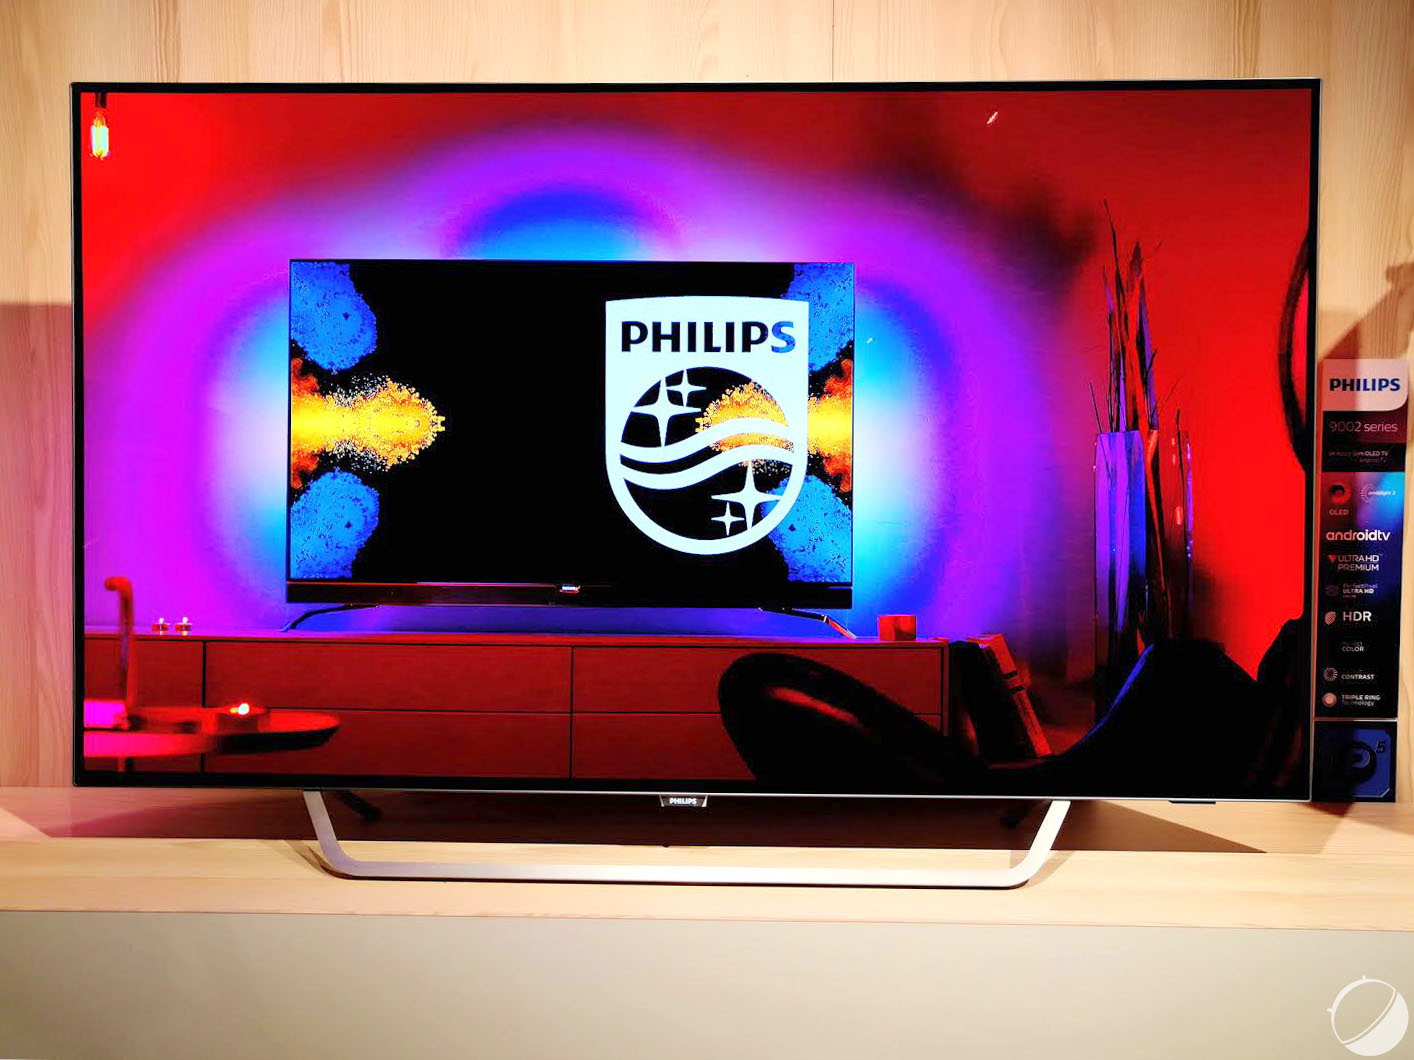 philips 55pos9002 tp vision renouvelle son oled sous android tv frandroid. Black Bedroom Furniture Sets. Home Design Ideas